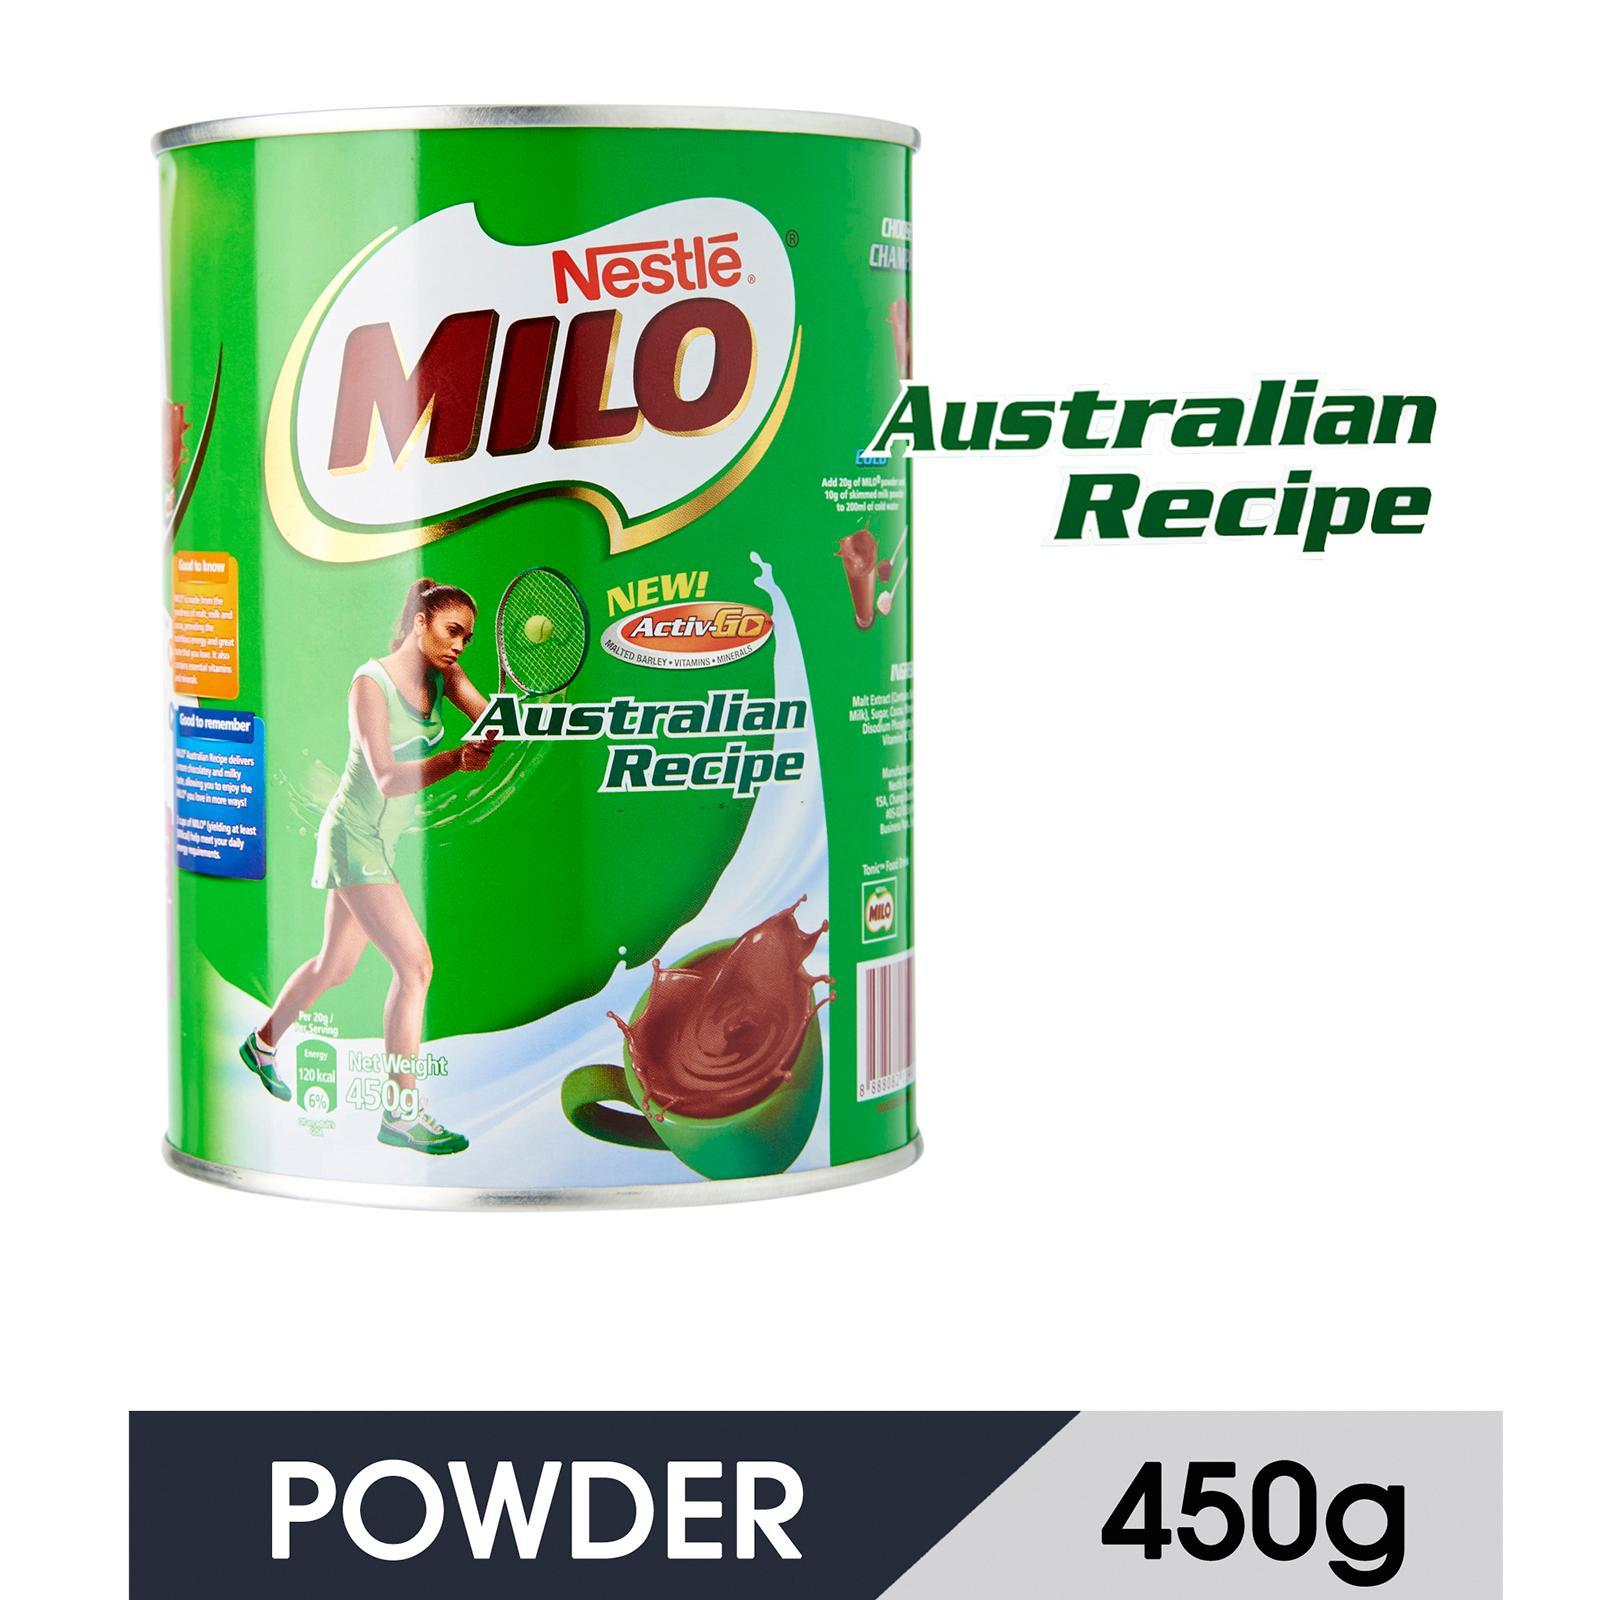 MILO Australian Recipe Powder Tin